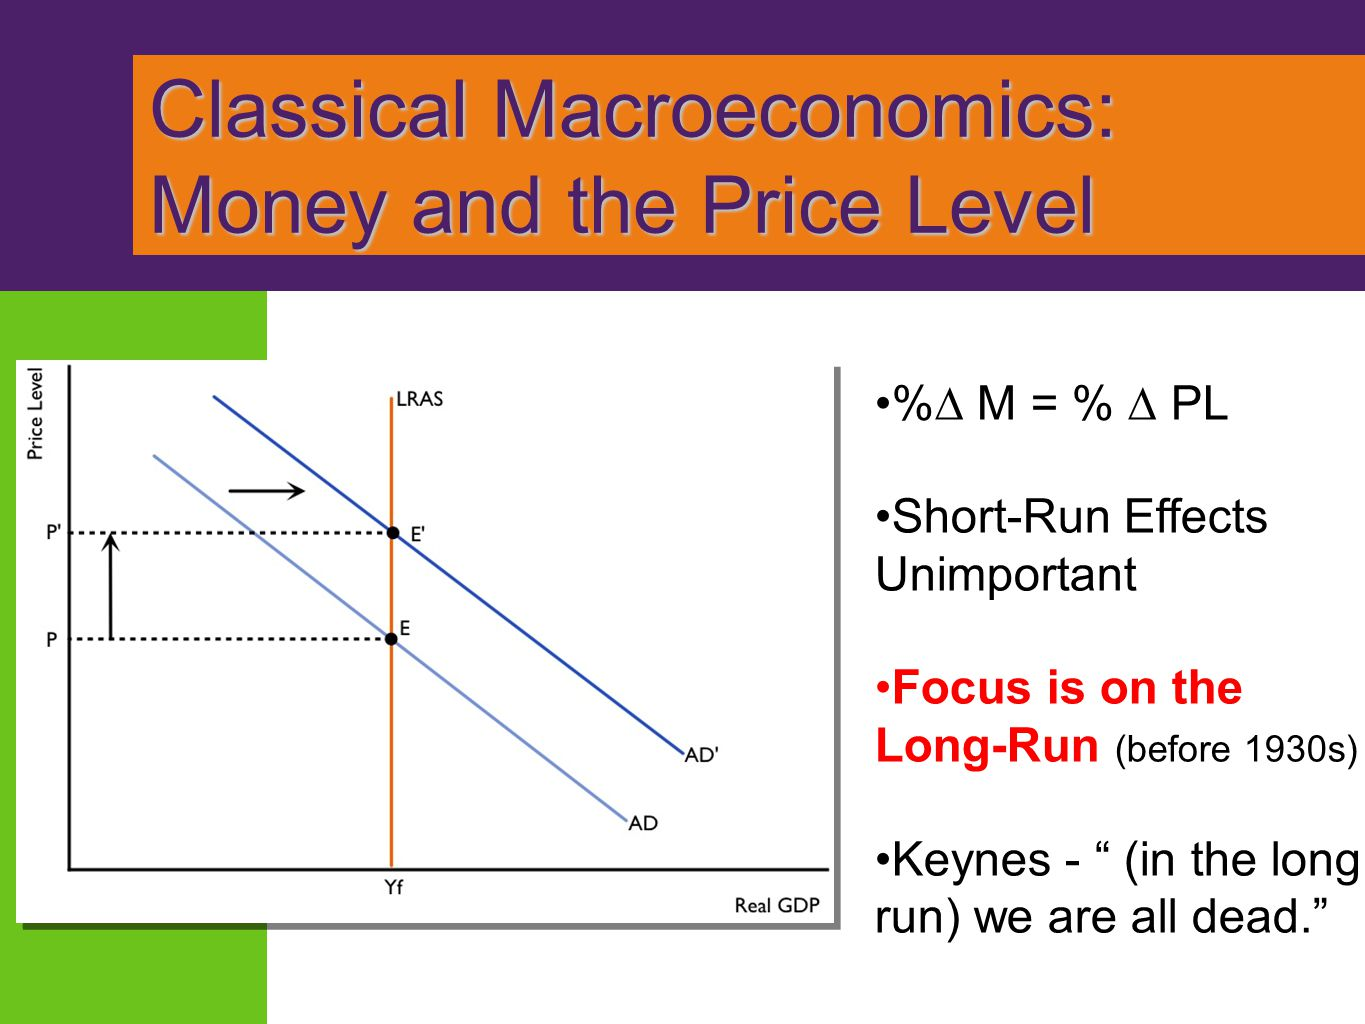 Classical Macroeconomics: Money and the Price Level